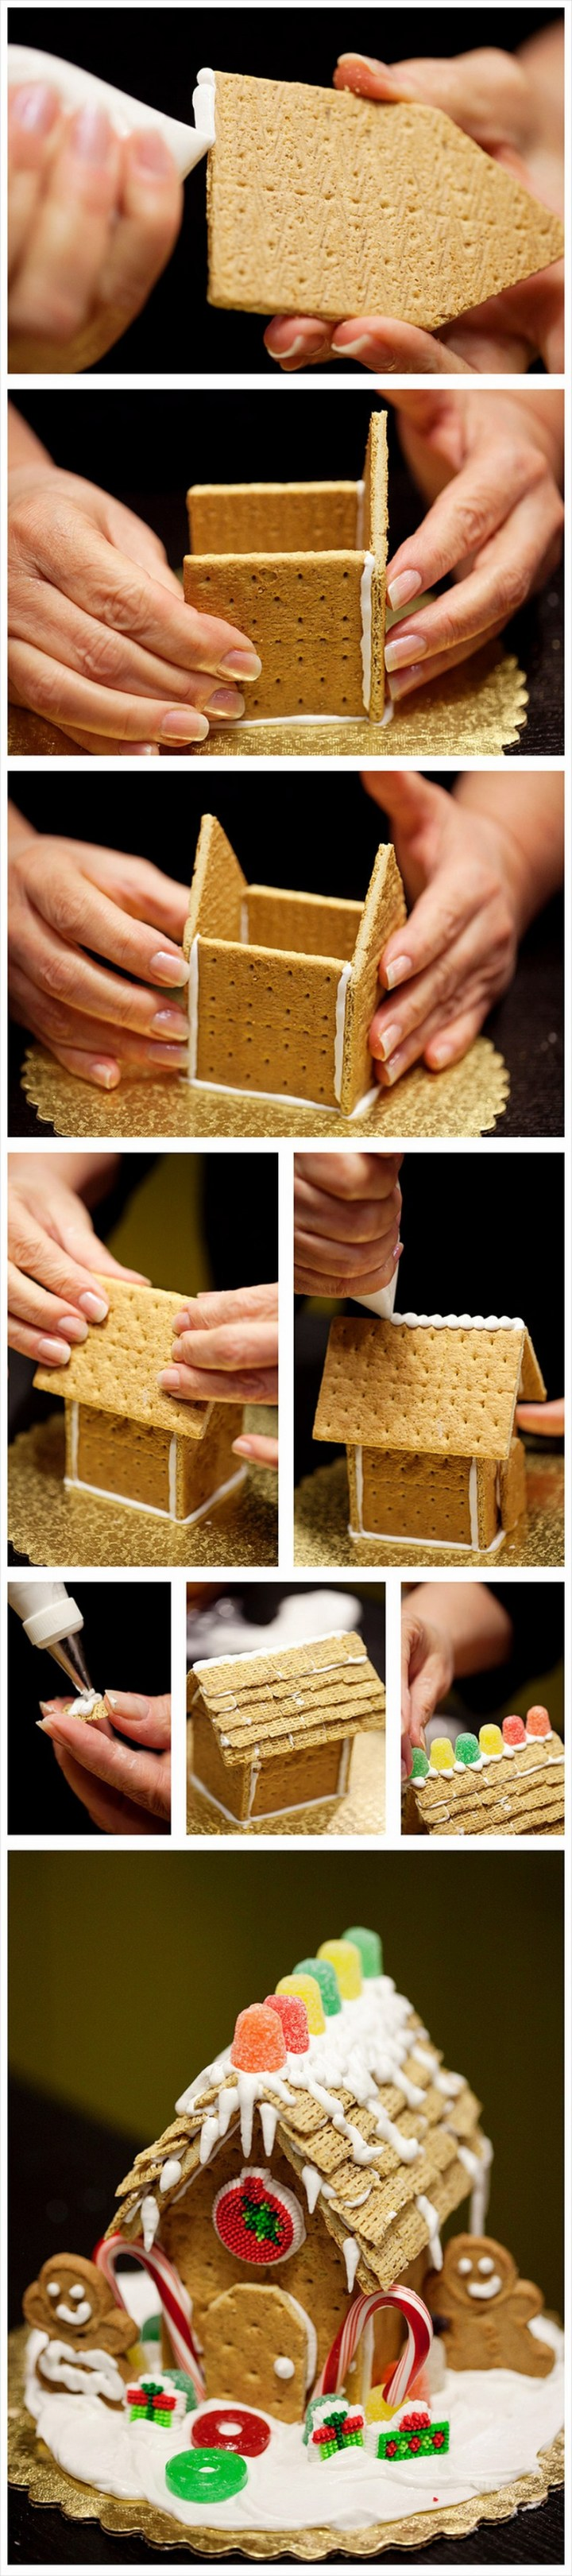 Build a gingerbread house with graham crackers